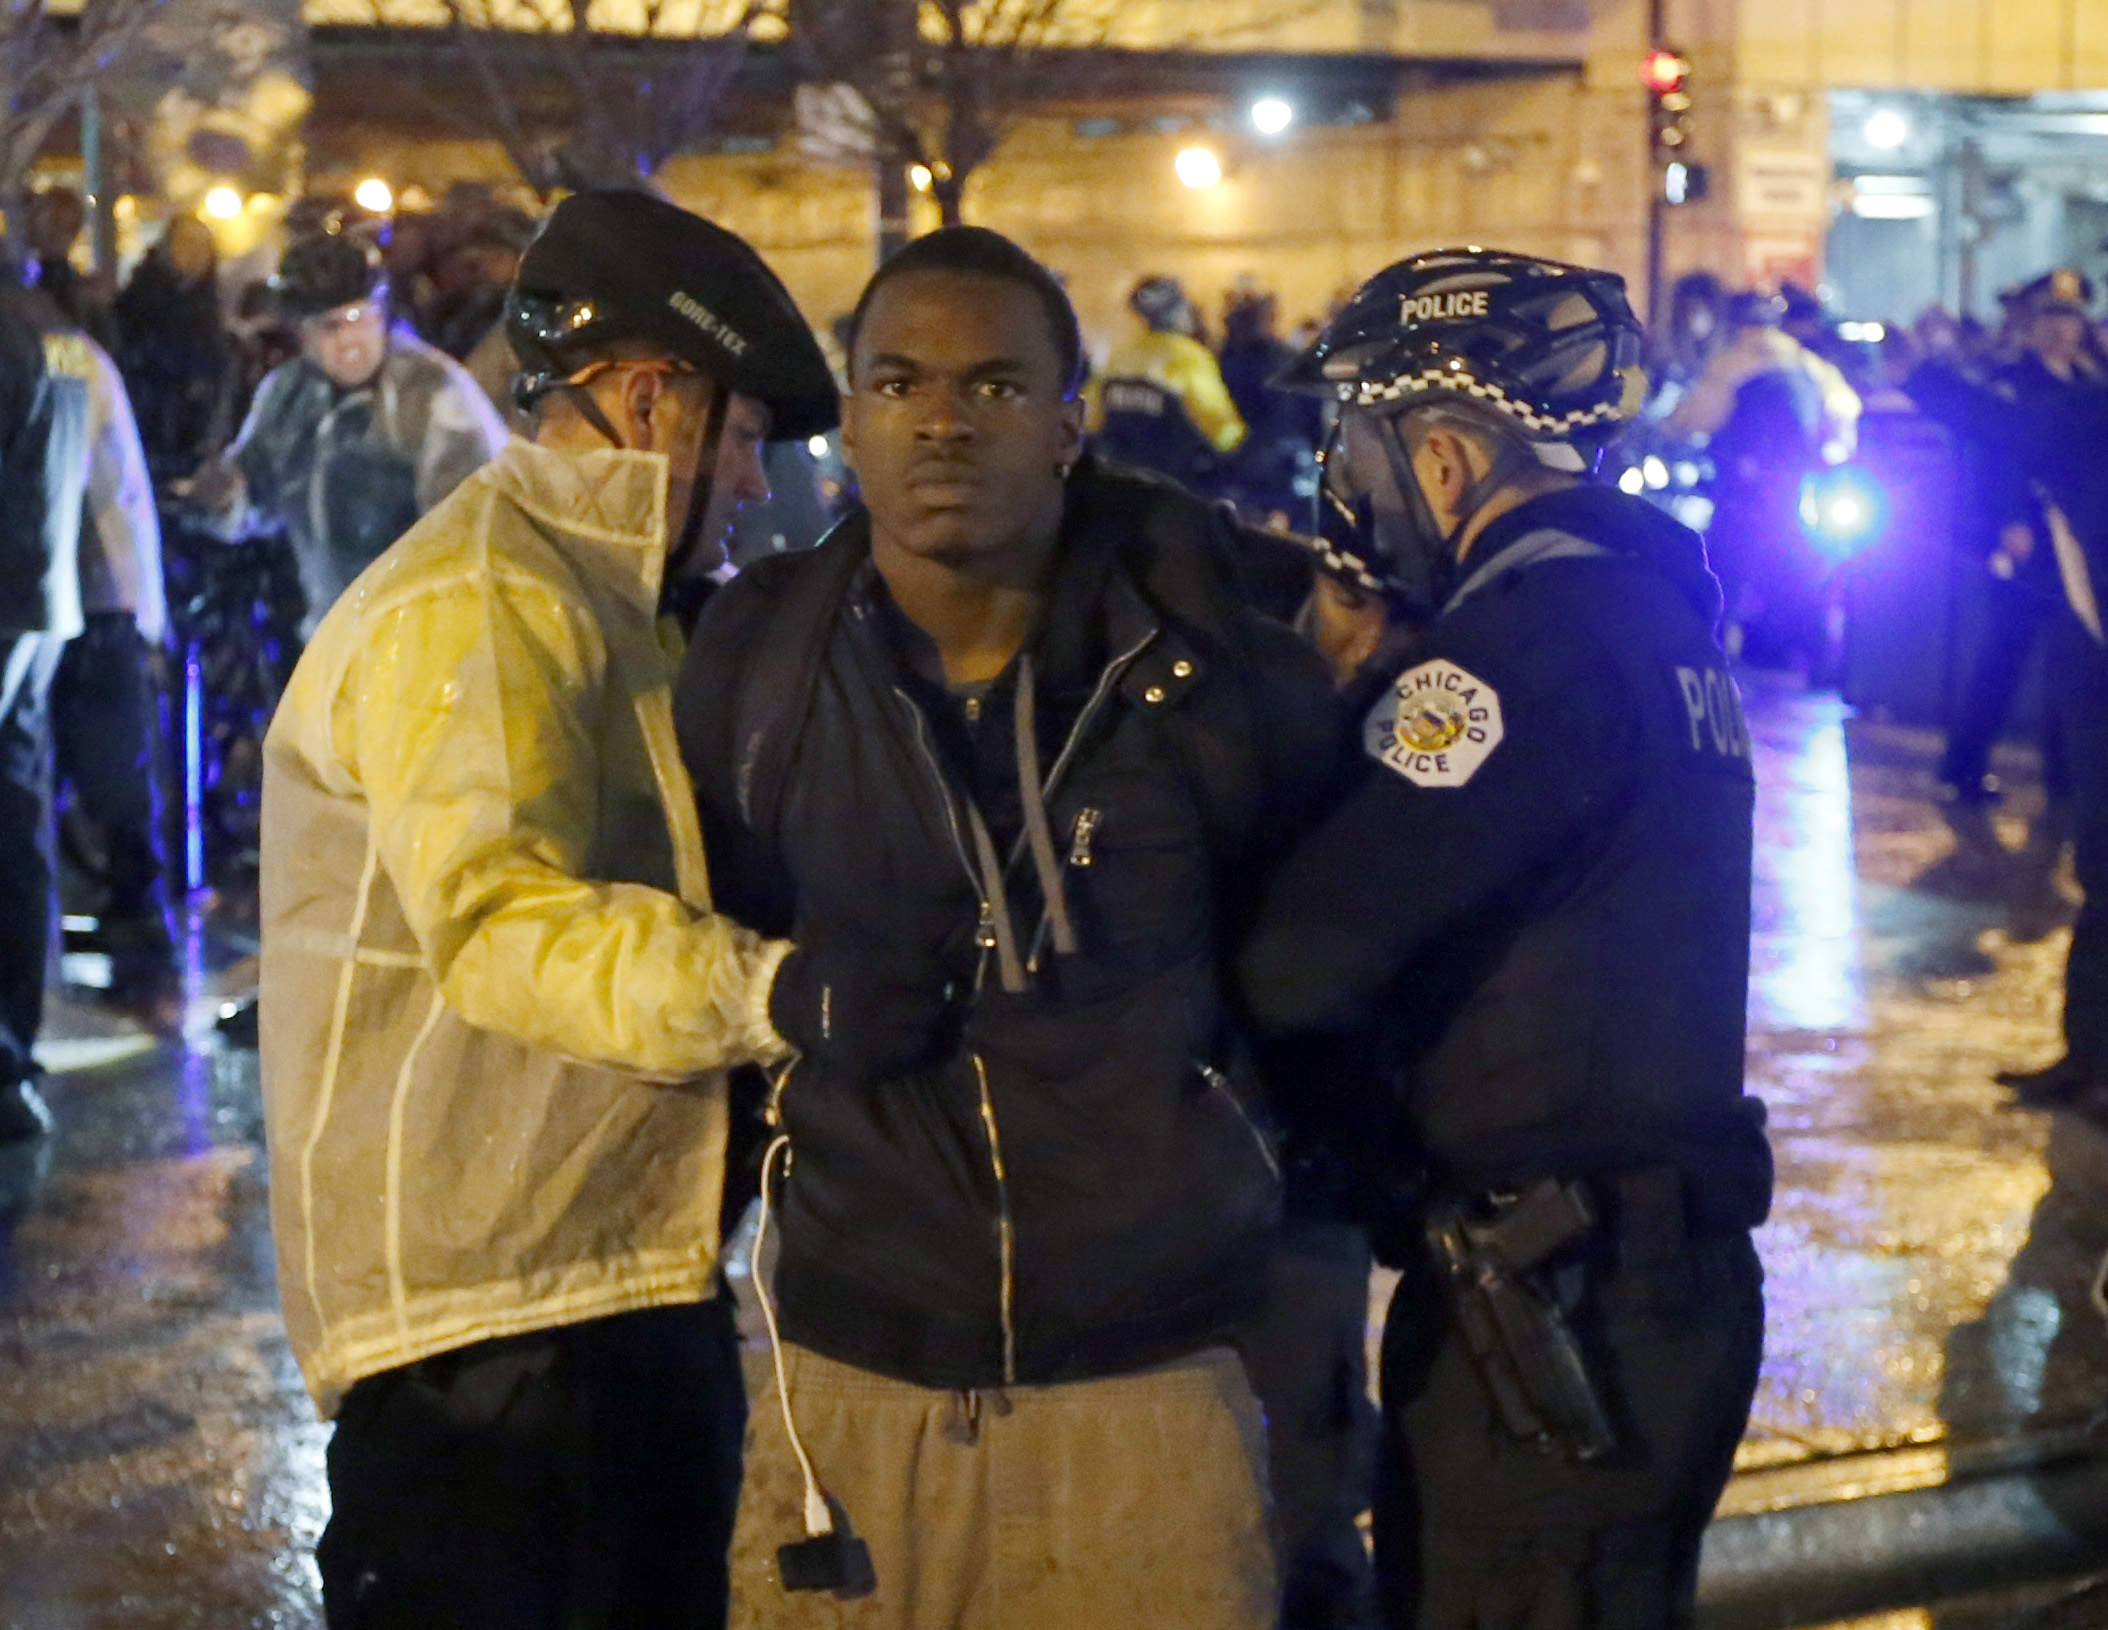 Two Chicago police officers take a man into custody during a protest march, Wednesday, Nov. 25, 2015, in Chicago, the day after murder charges were brought against police officer Jason Van Dyke in the killing of 17-year-old Laquan McDonald.